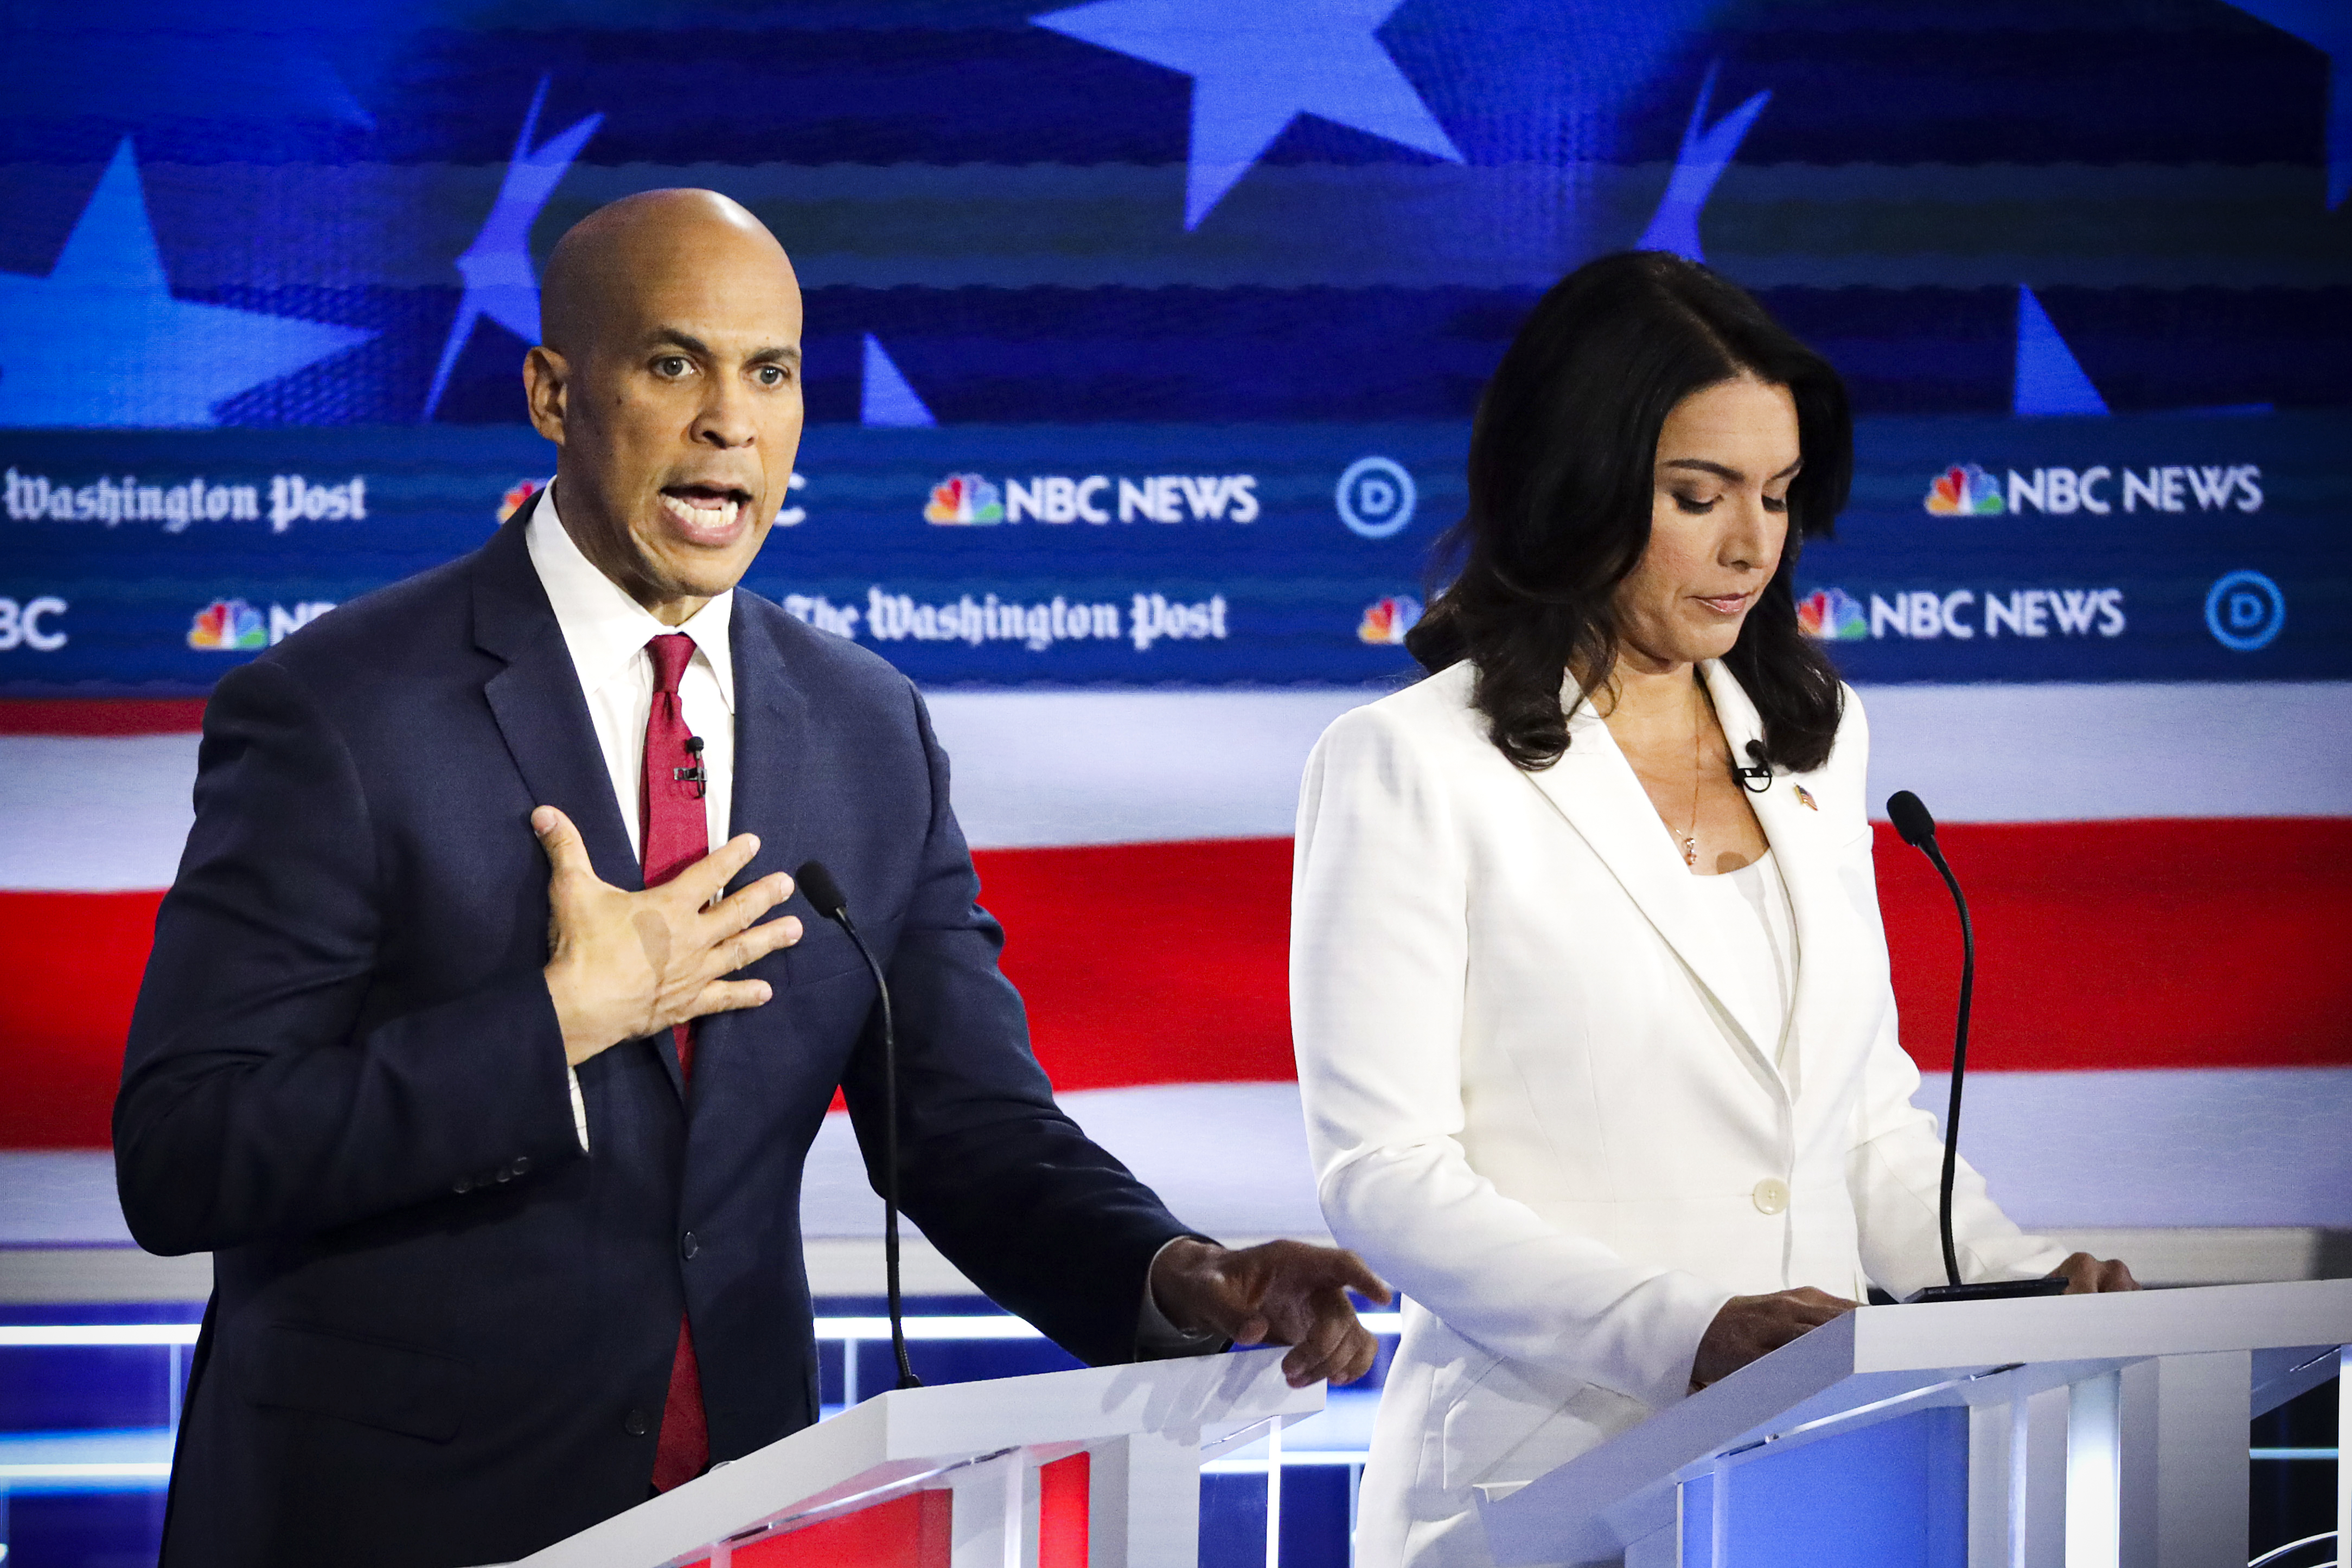 4 winners and 3 losers from the November Democratic debate